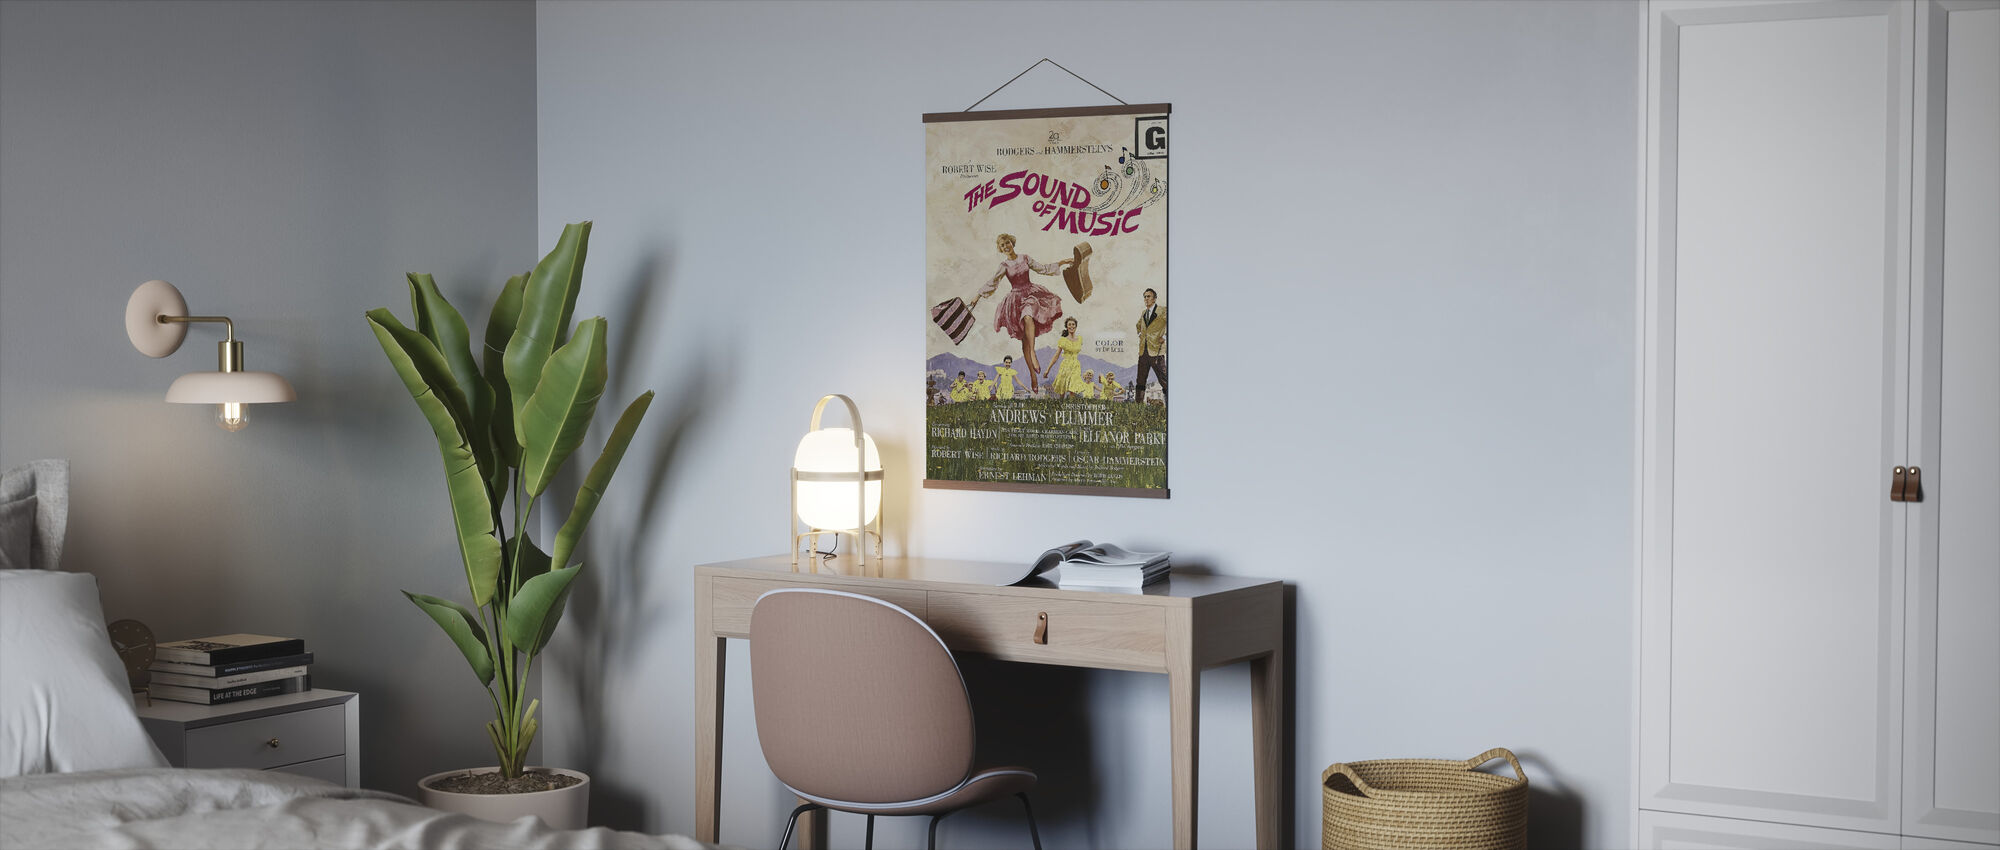 Sound of Music - Poster - Office